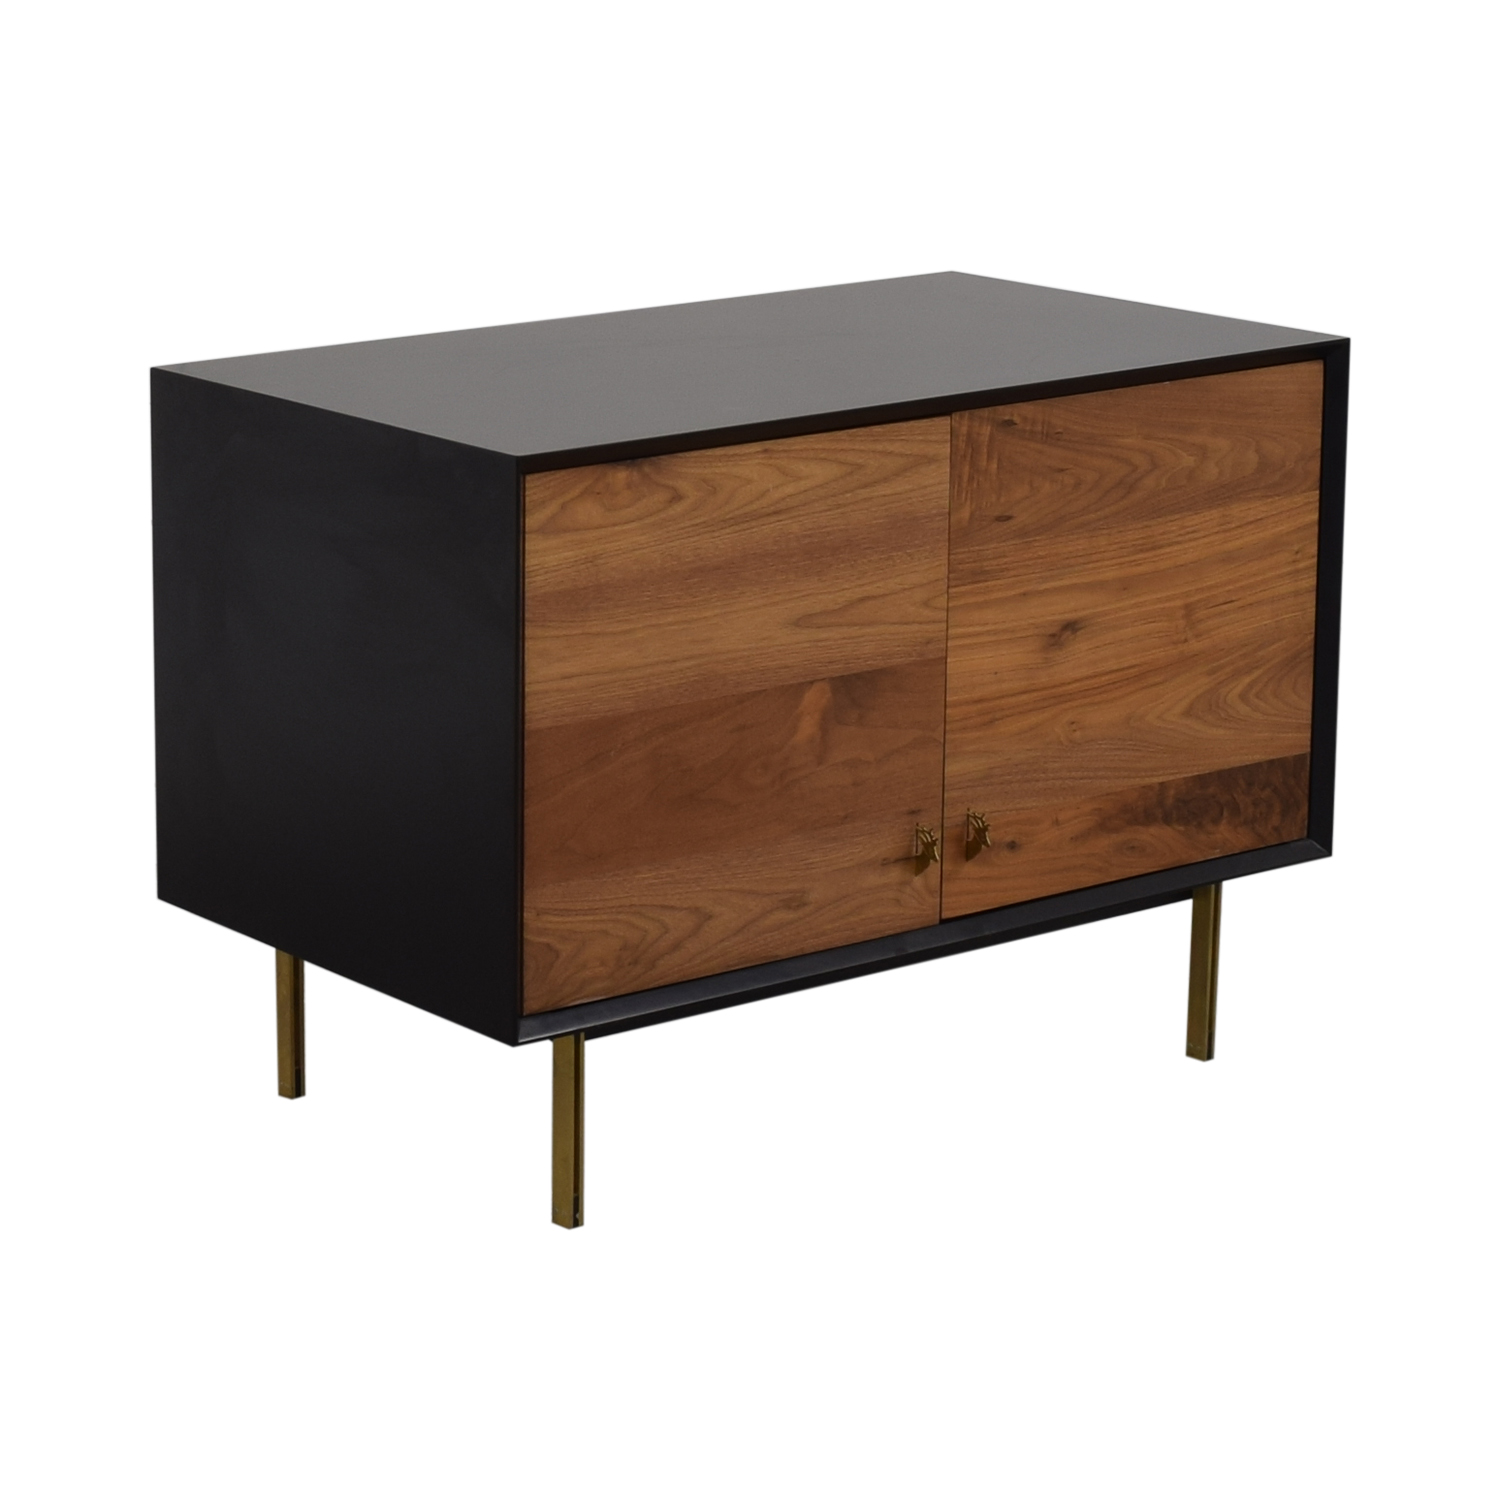 Organic Modernism Organic Modernism Custom Made Wood Media Cabinet dimensions